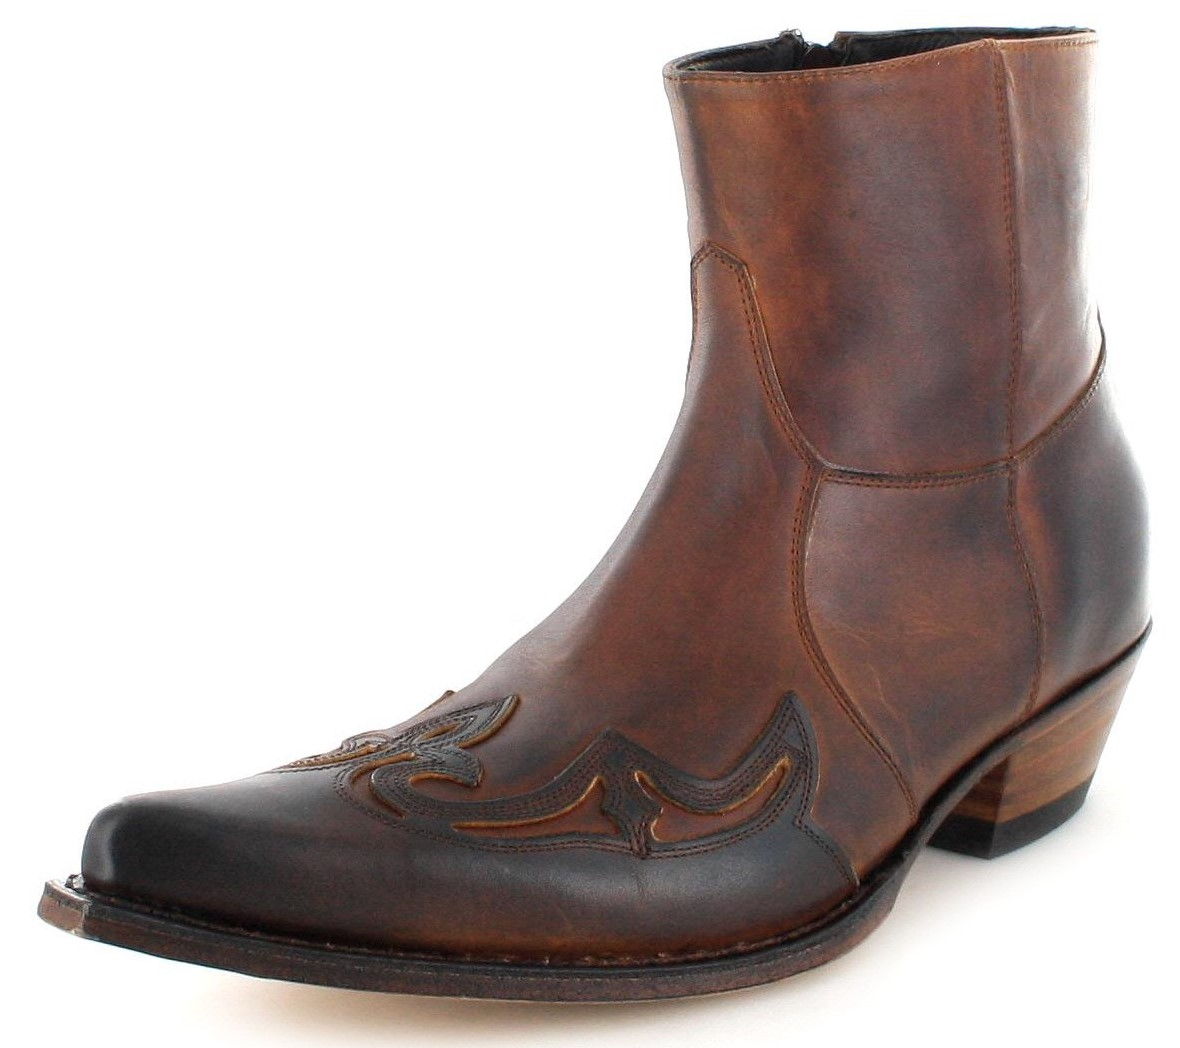 Sendra Boots 7783 Tang Western ankle boot - Brown